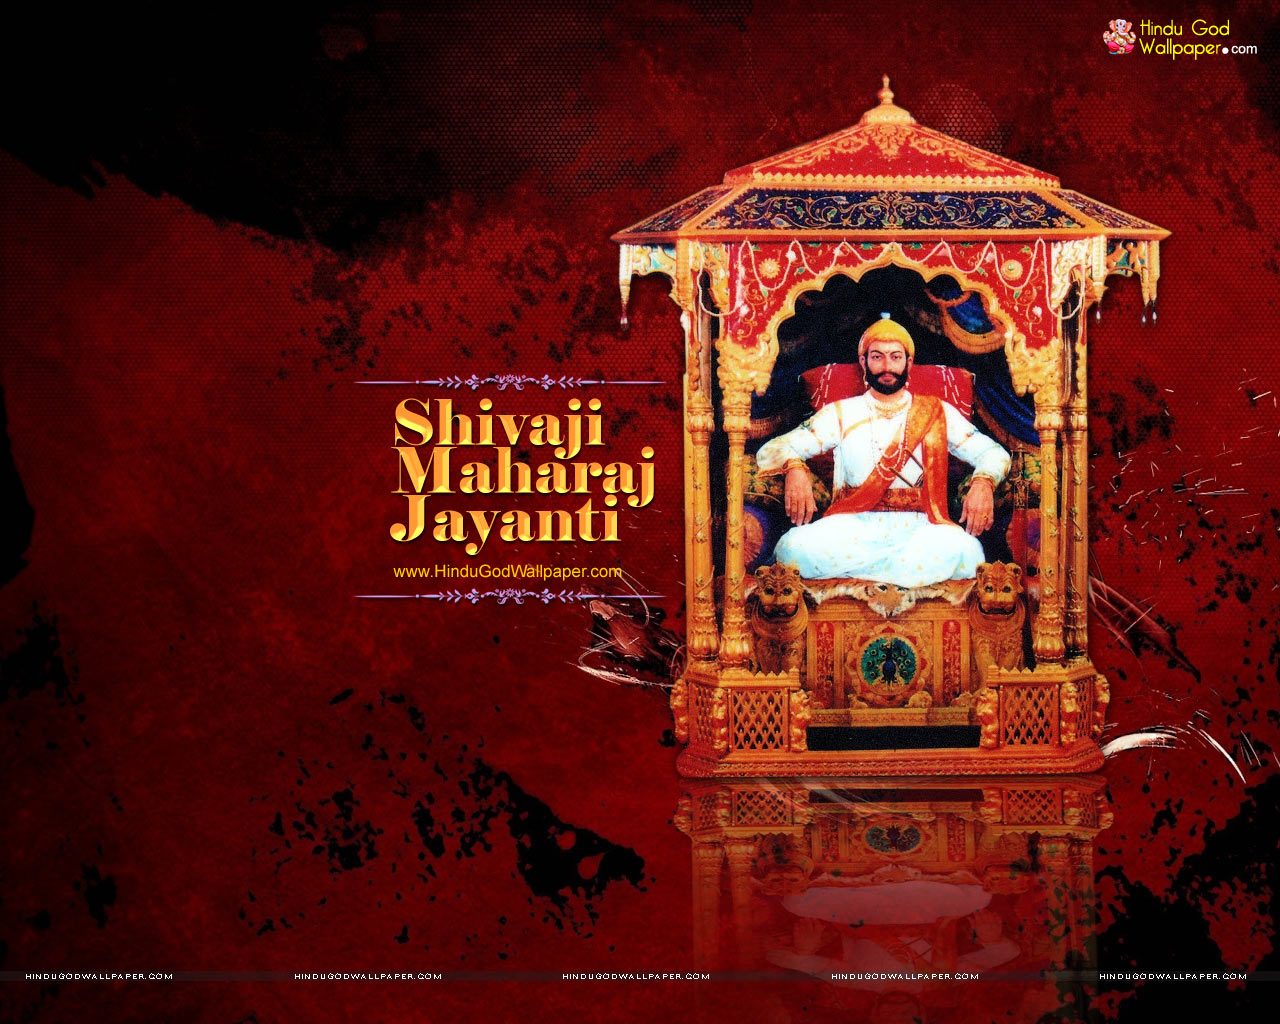 Shivaji Jayanti Hd Wallpapers Messages Images Download